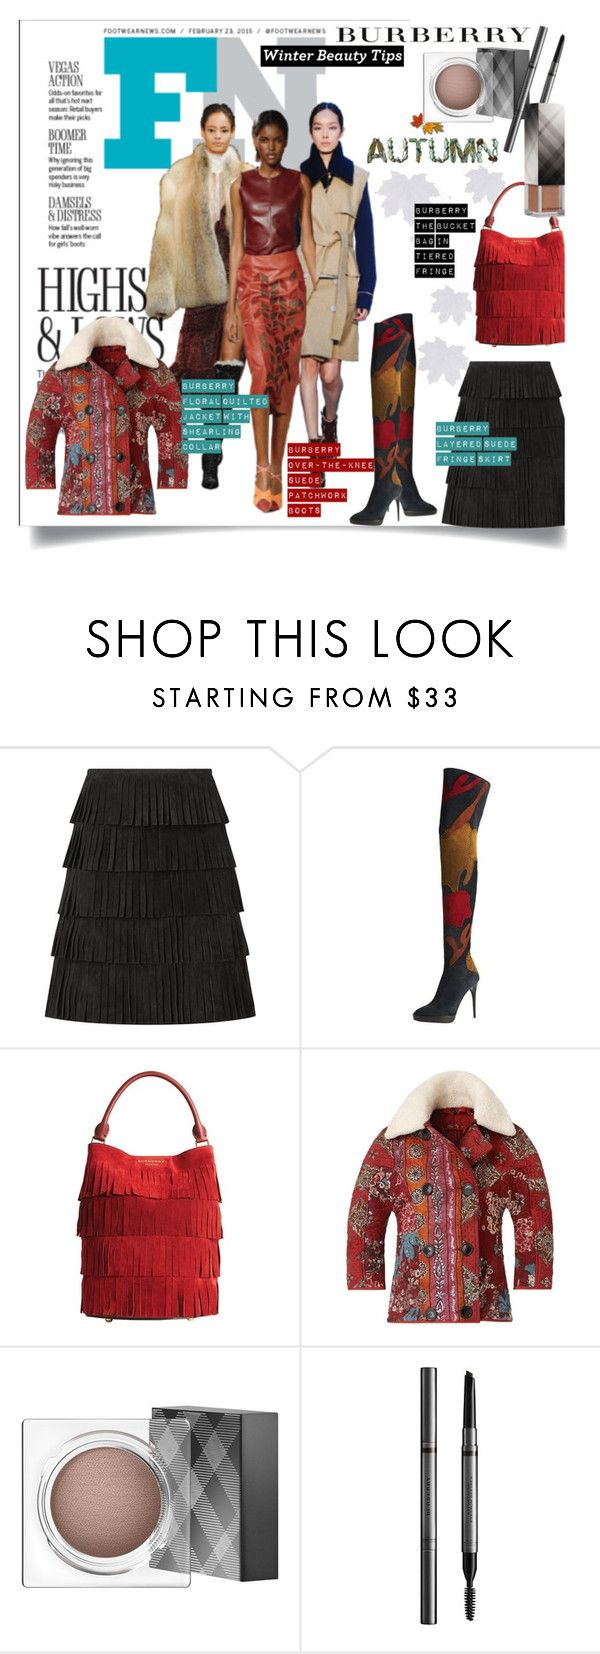 Burberry Autumn/Winter 2015... by unamiradaatuarmario on Polyvore featuring moda, Burberry, fashionWeek and autumn2015